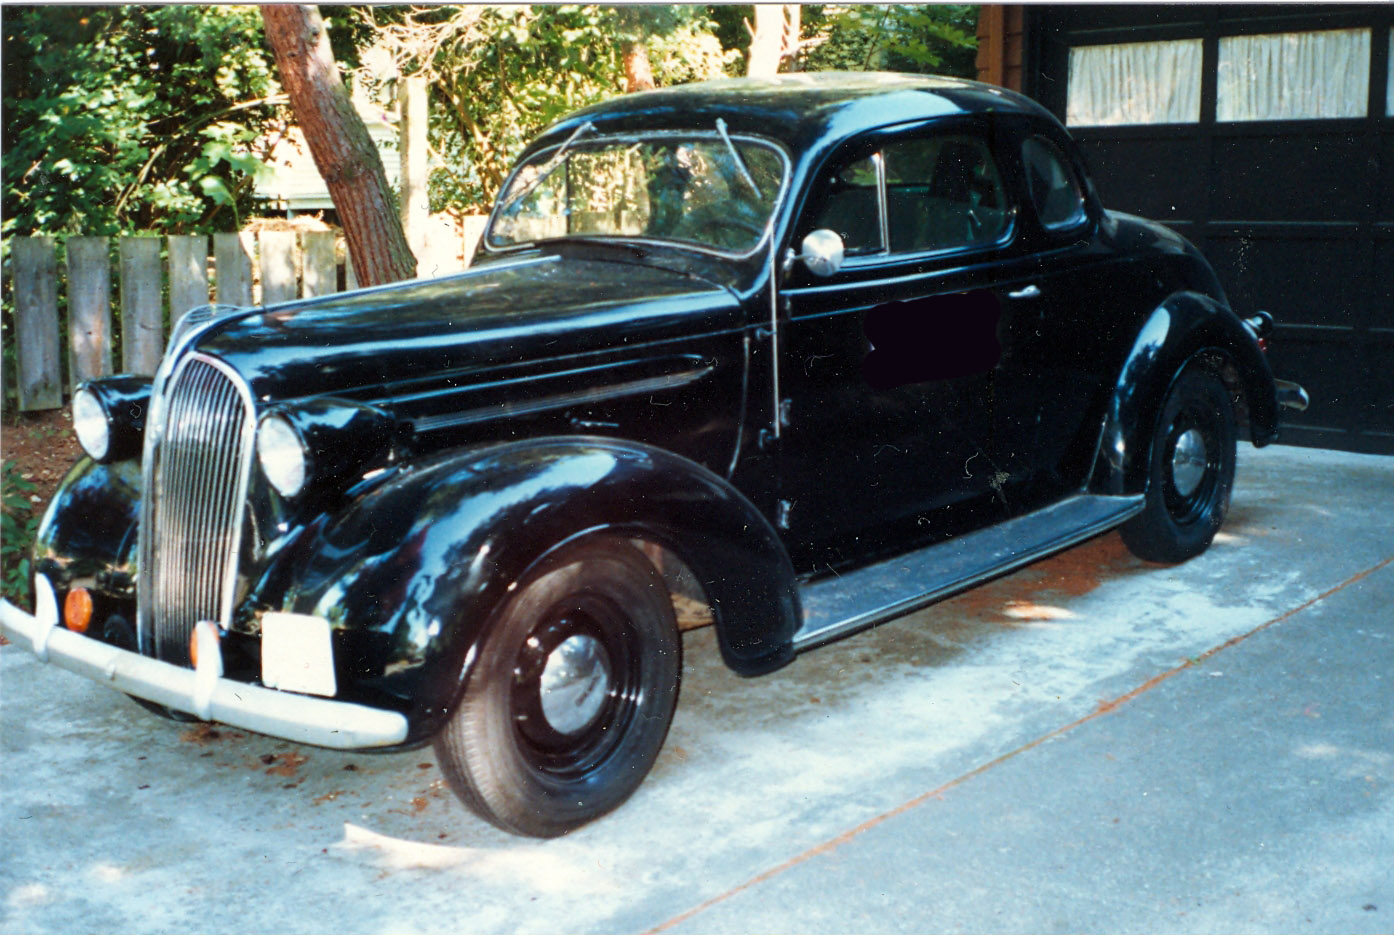 Fine Old Car To Restore Photos - Classic Cars Ideas - boiq.info